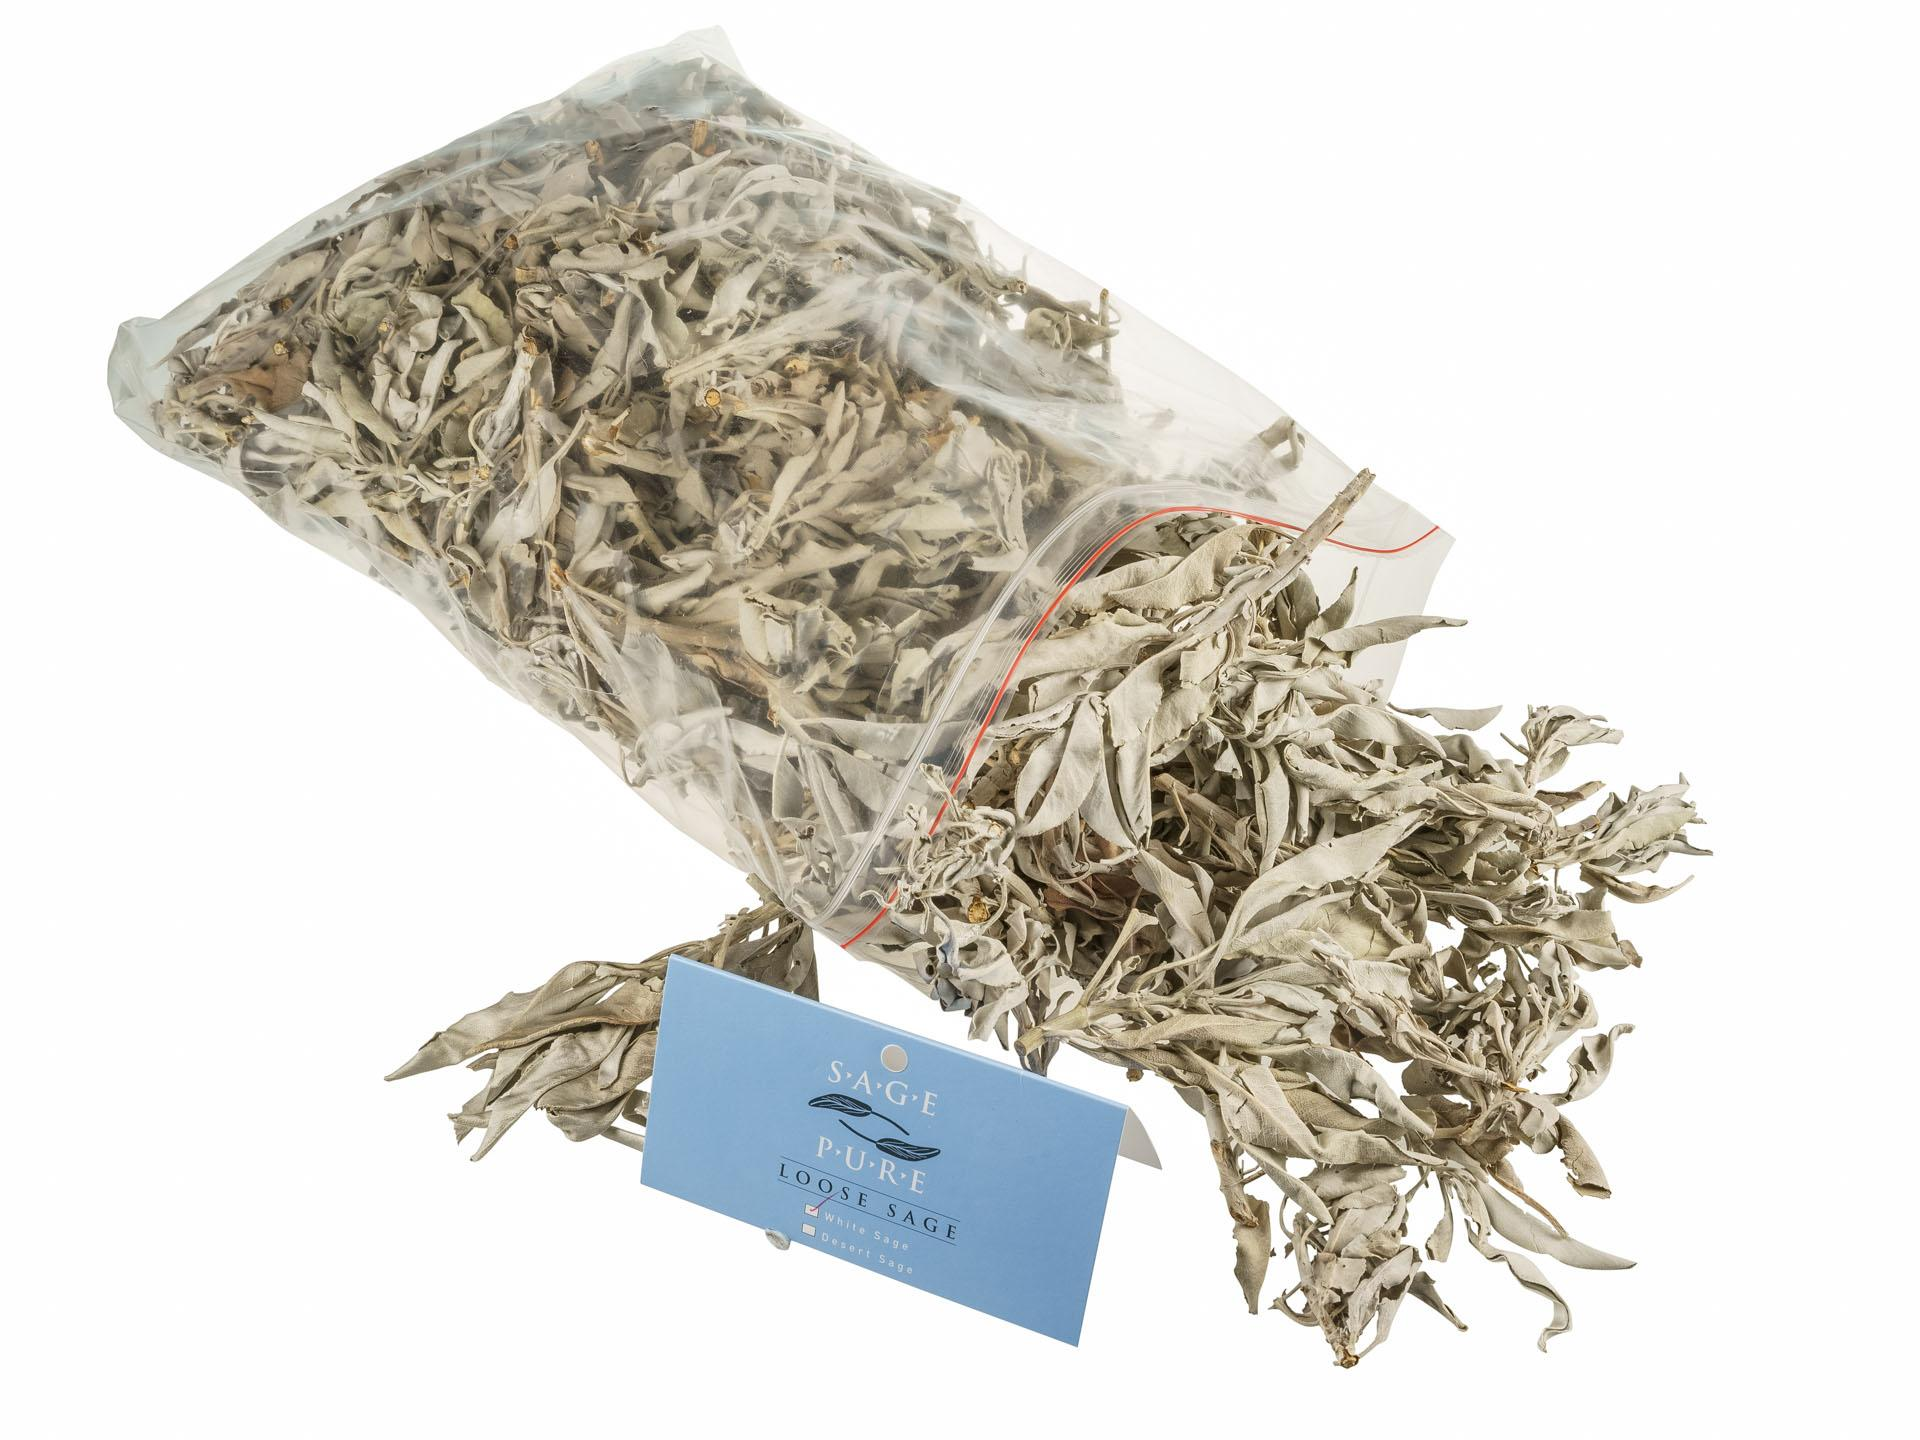 Sage Pure Loose smudge, 500g